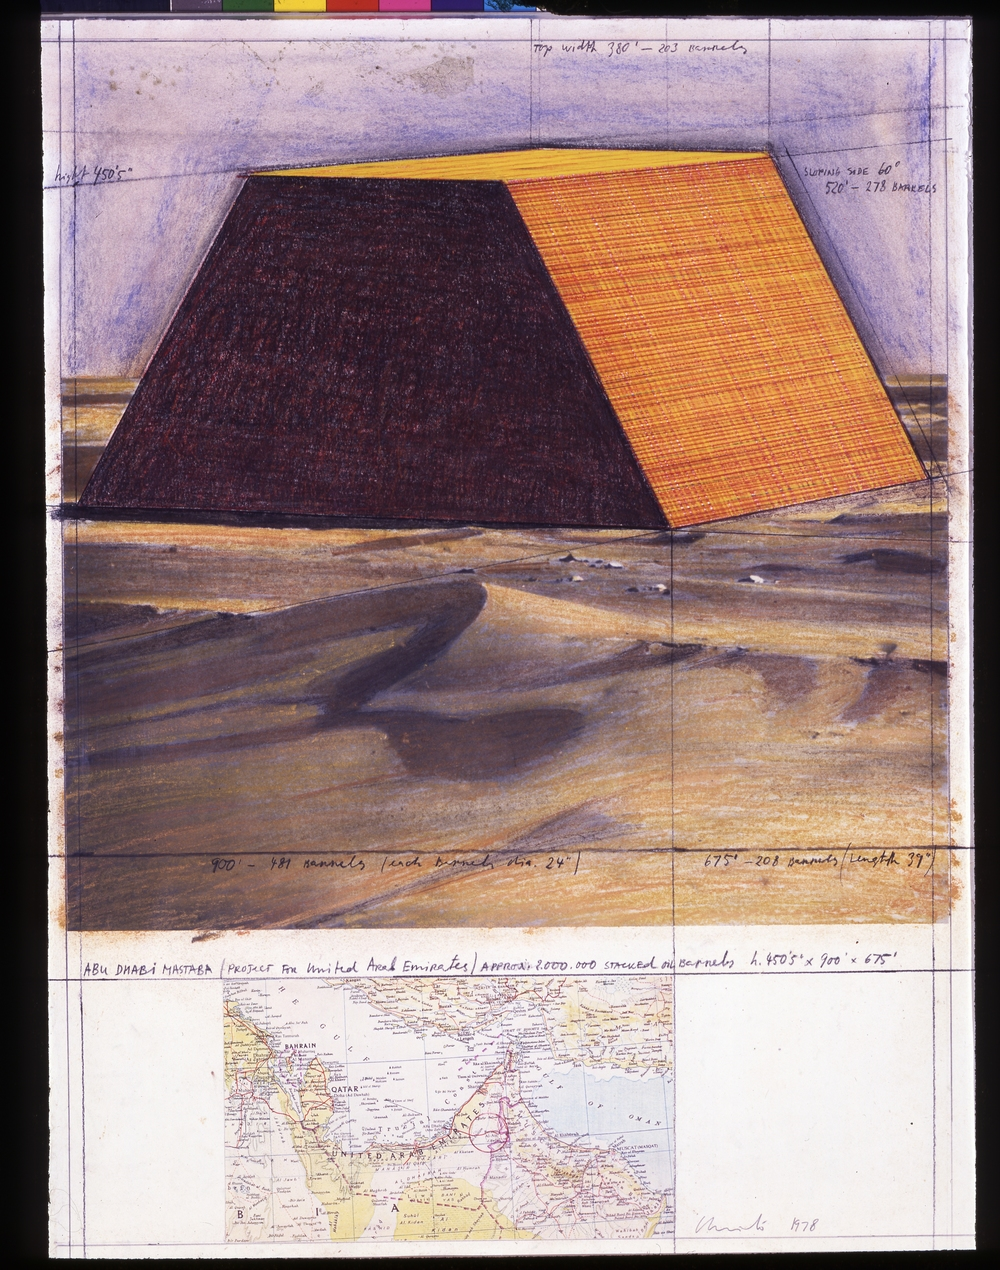 Abu Dhabi Mastaba, Project for the United Arab Emirates  (1978)  Christo & Jeanne Claude  Photo: Eeva-Inkeri   © Christo 2016